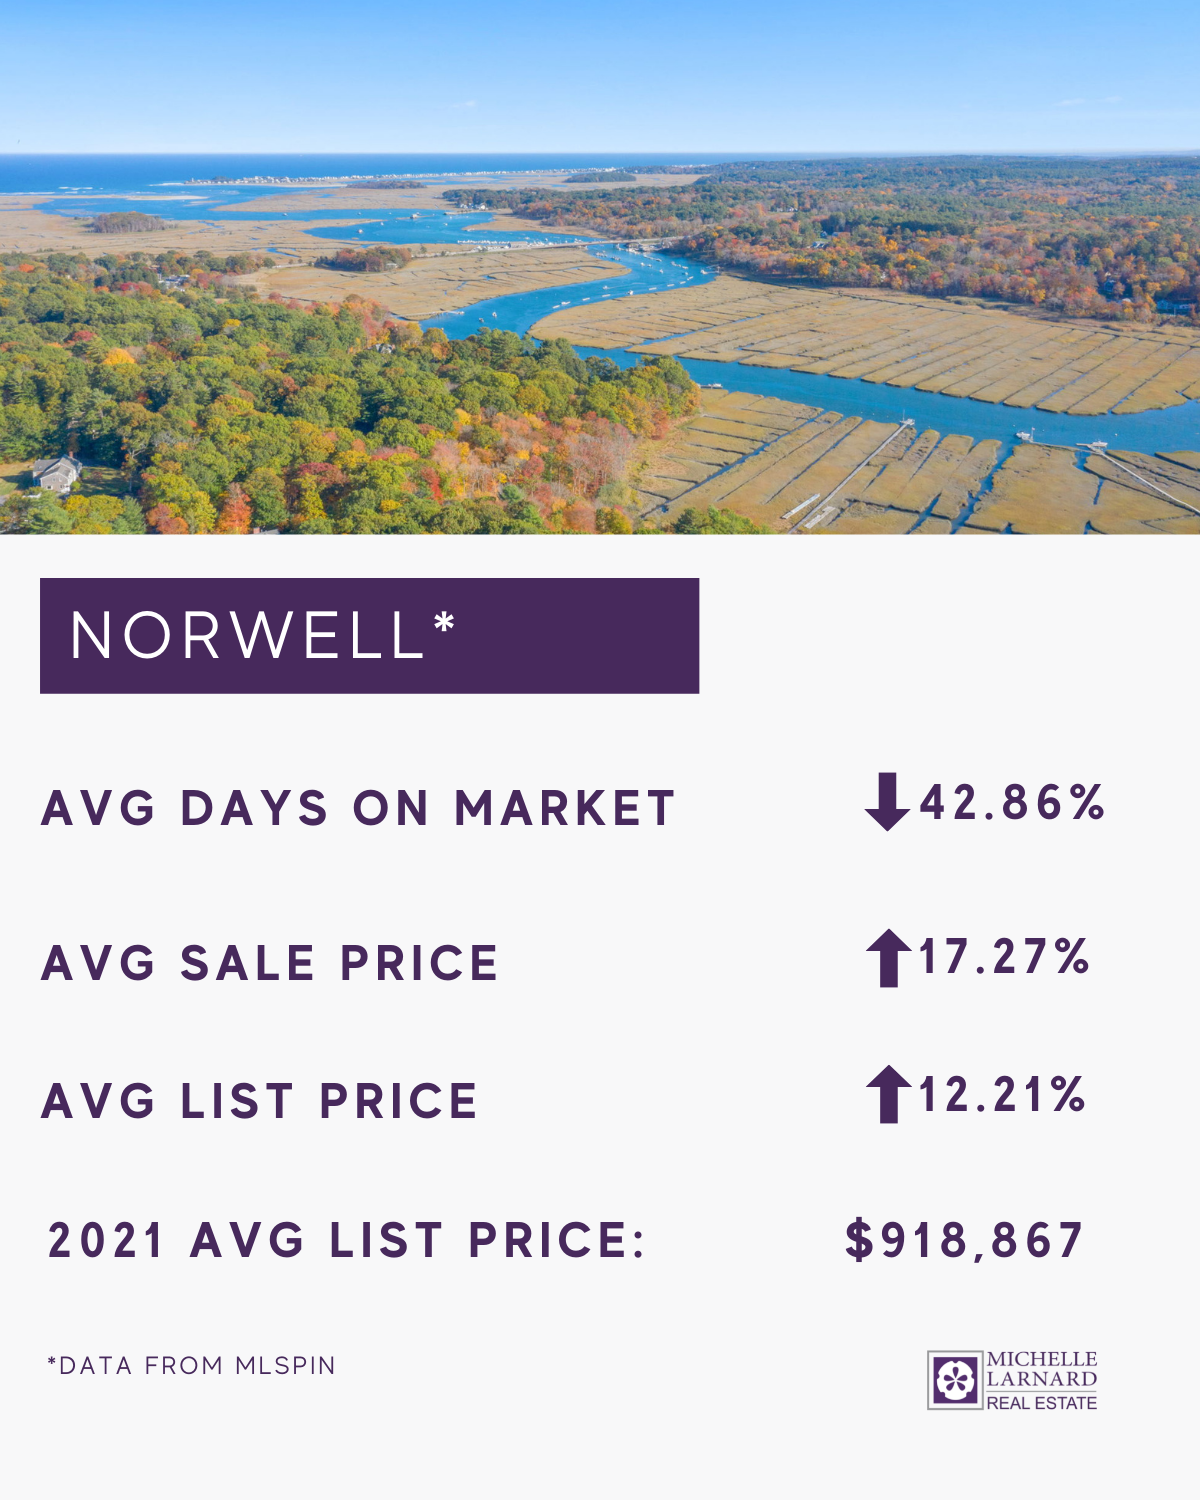 norwell real estate